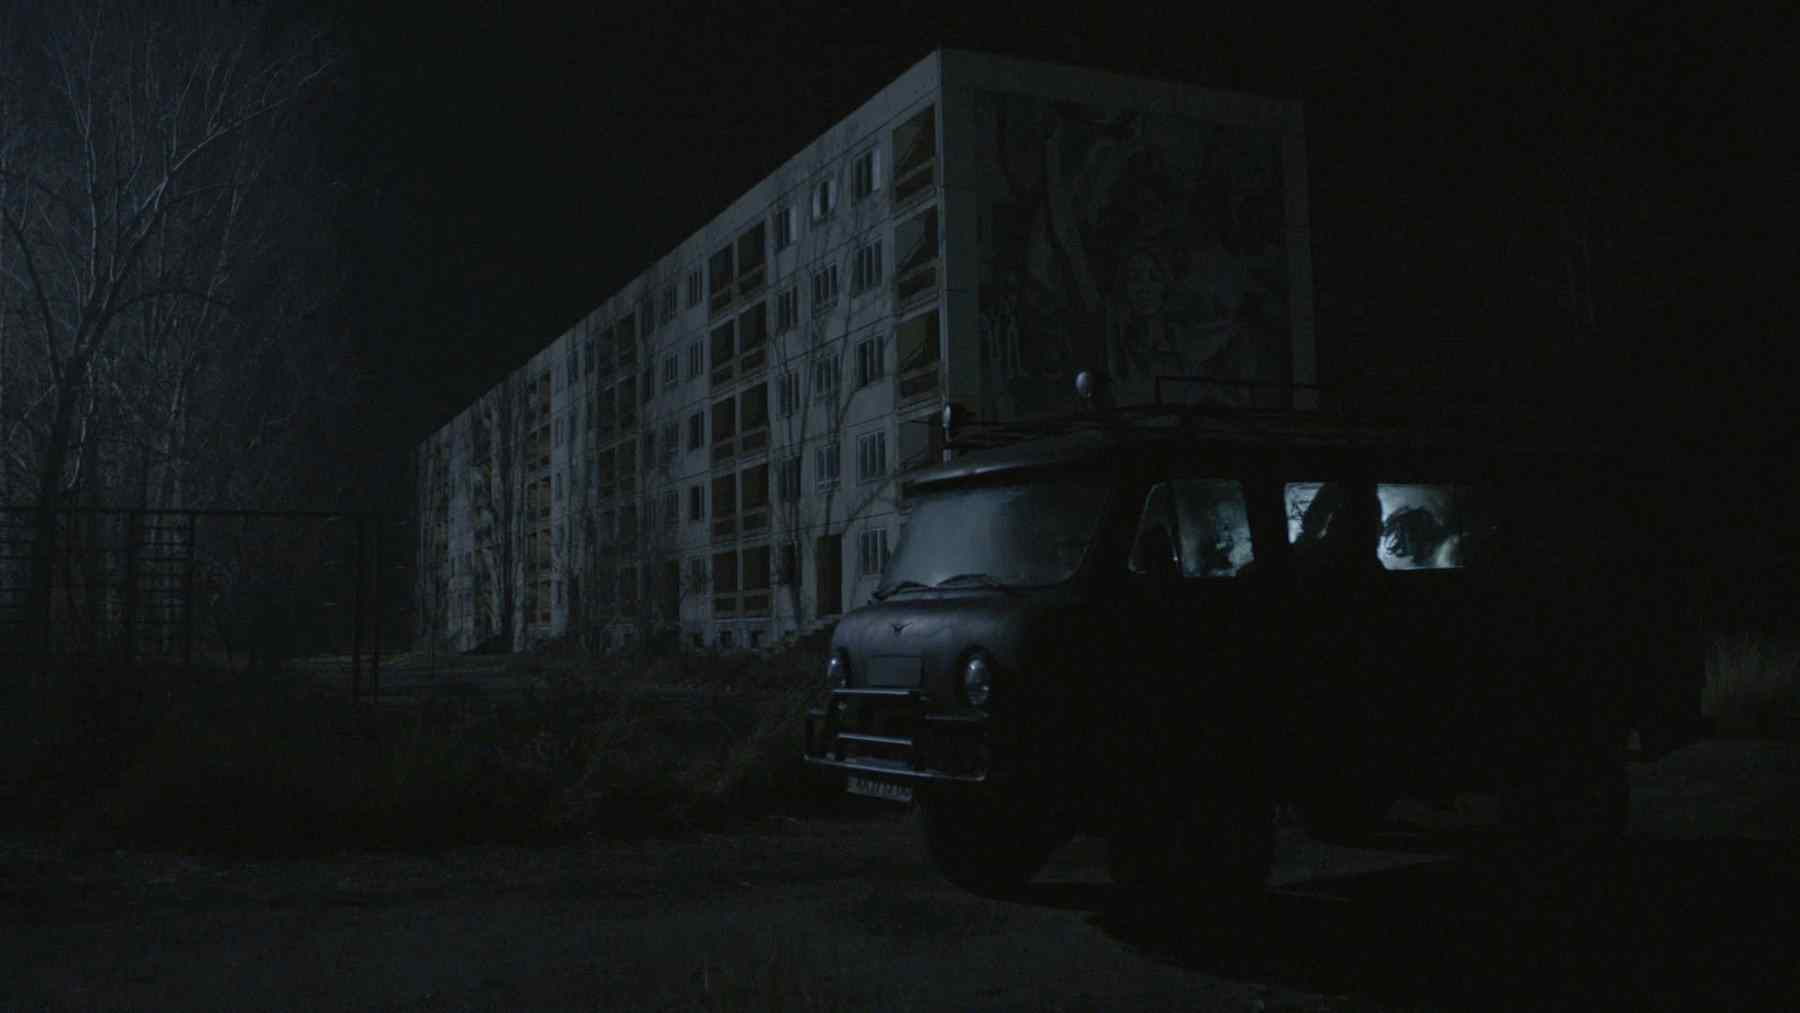 A movie still from the film Chernobyl Diaries directed by Bradley Parker.